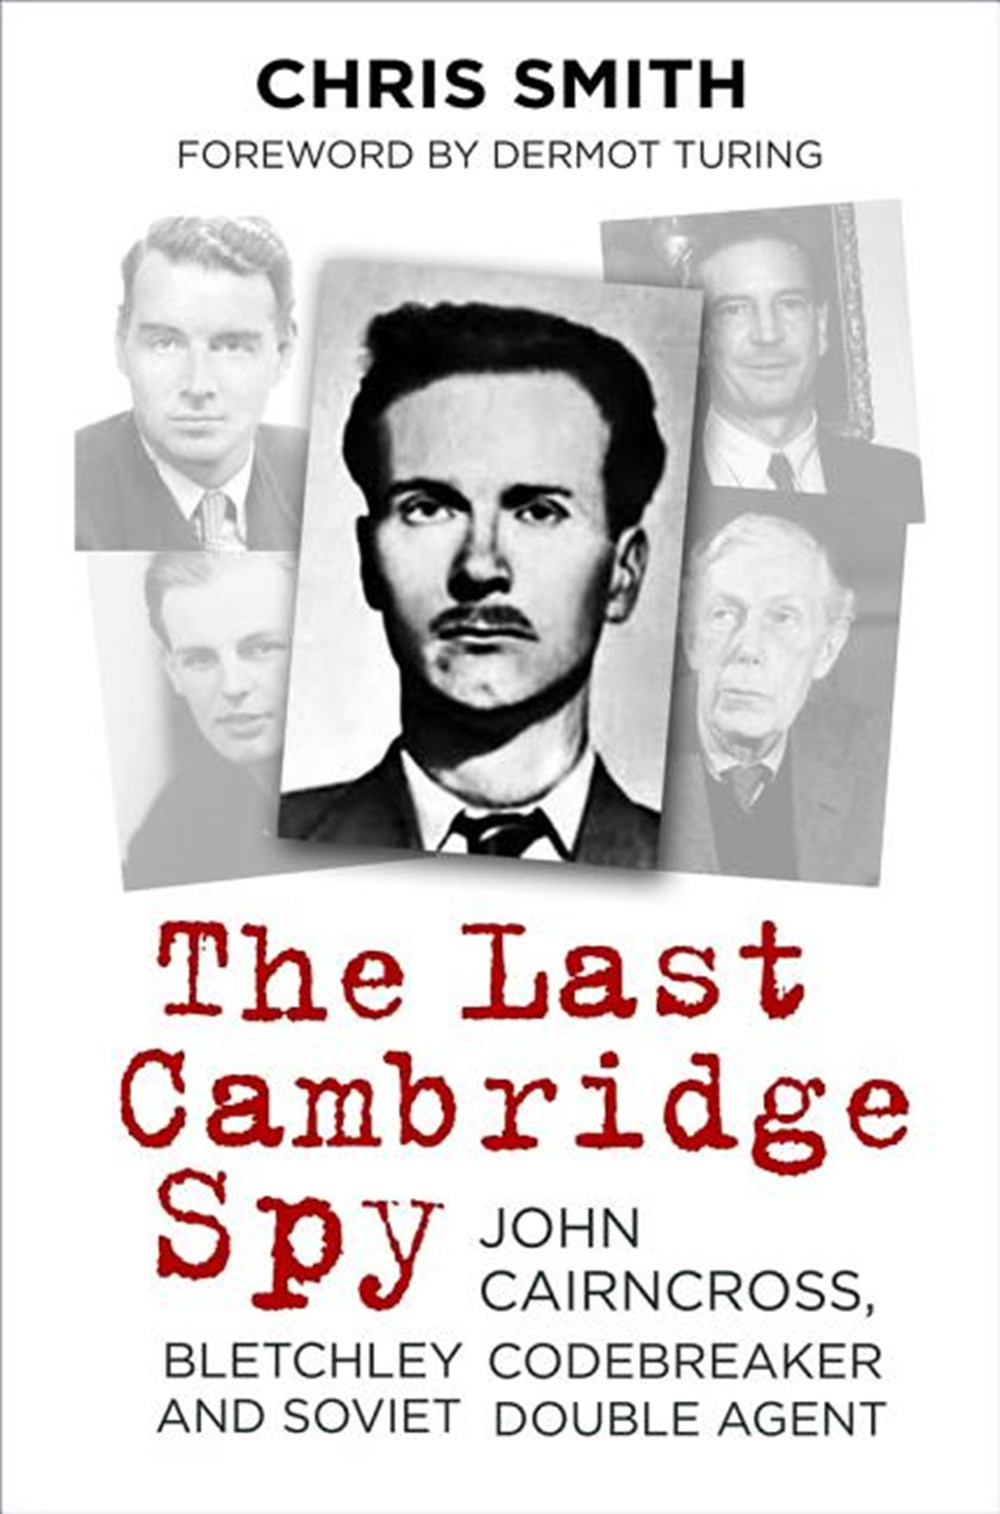 Last Cambridge Spy John Cairncross, Bletchley Codebreaker and Soviet Double Agent